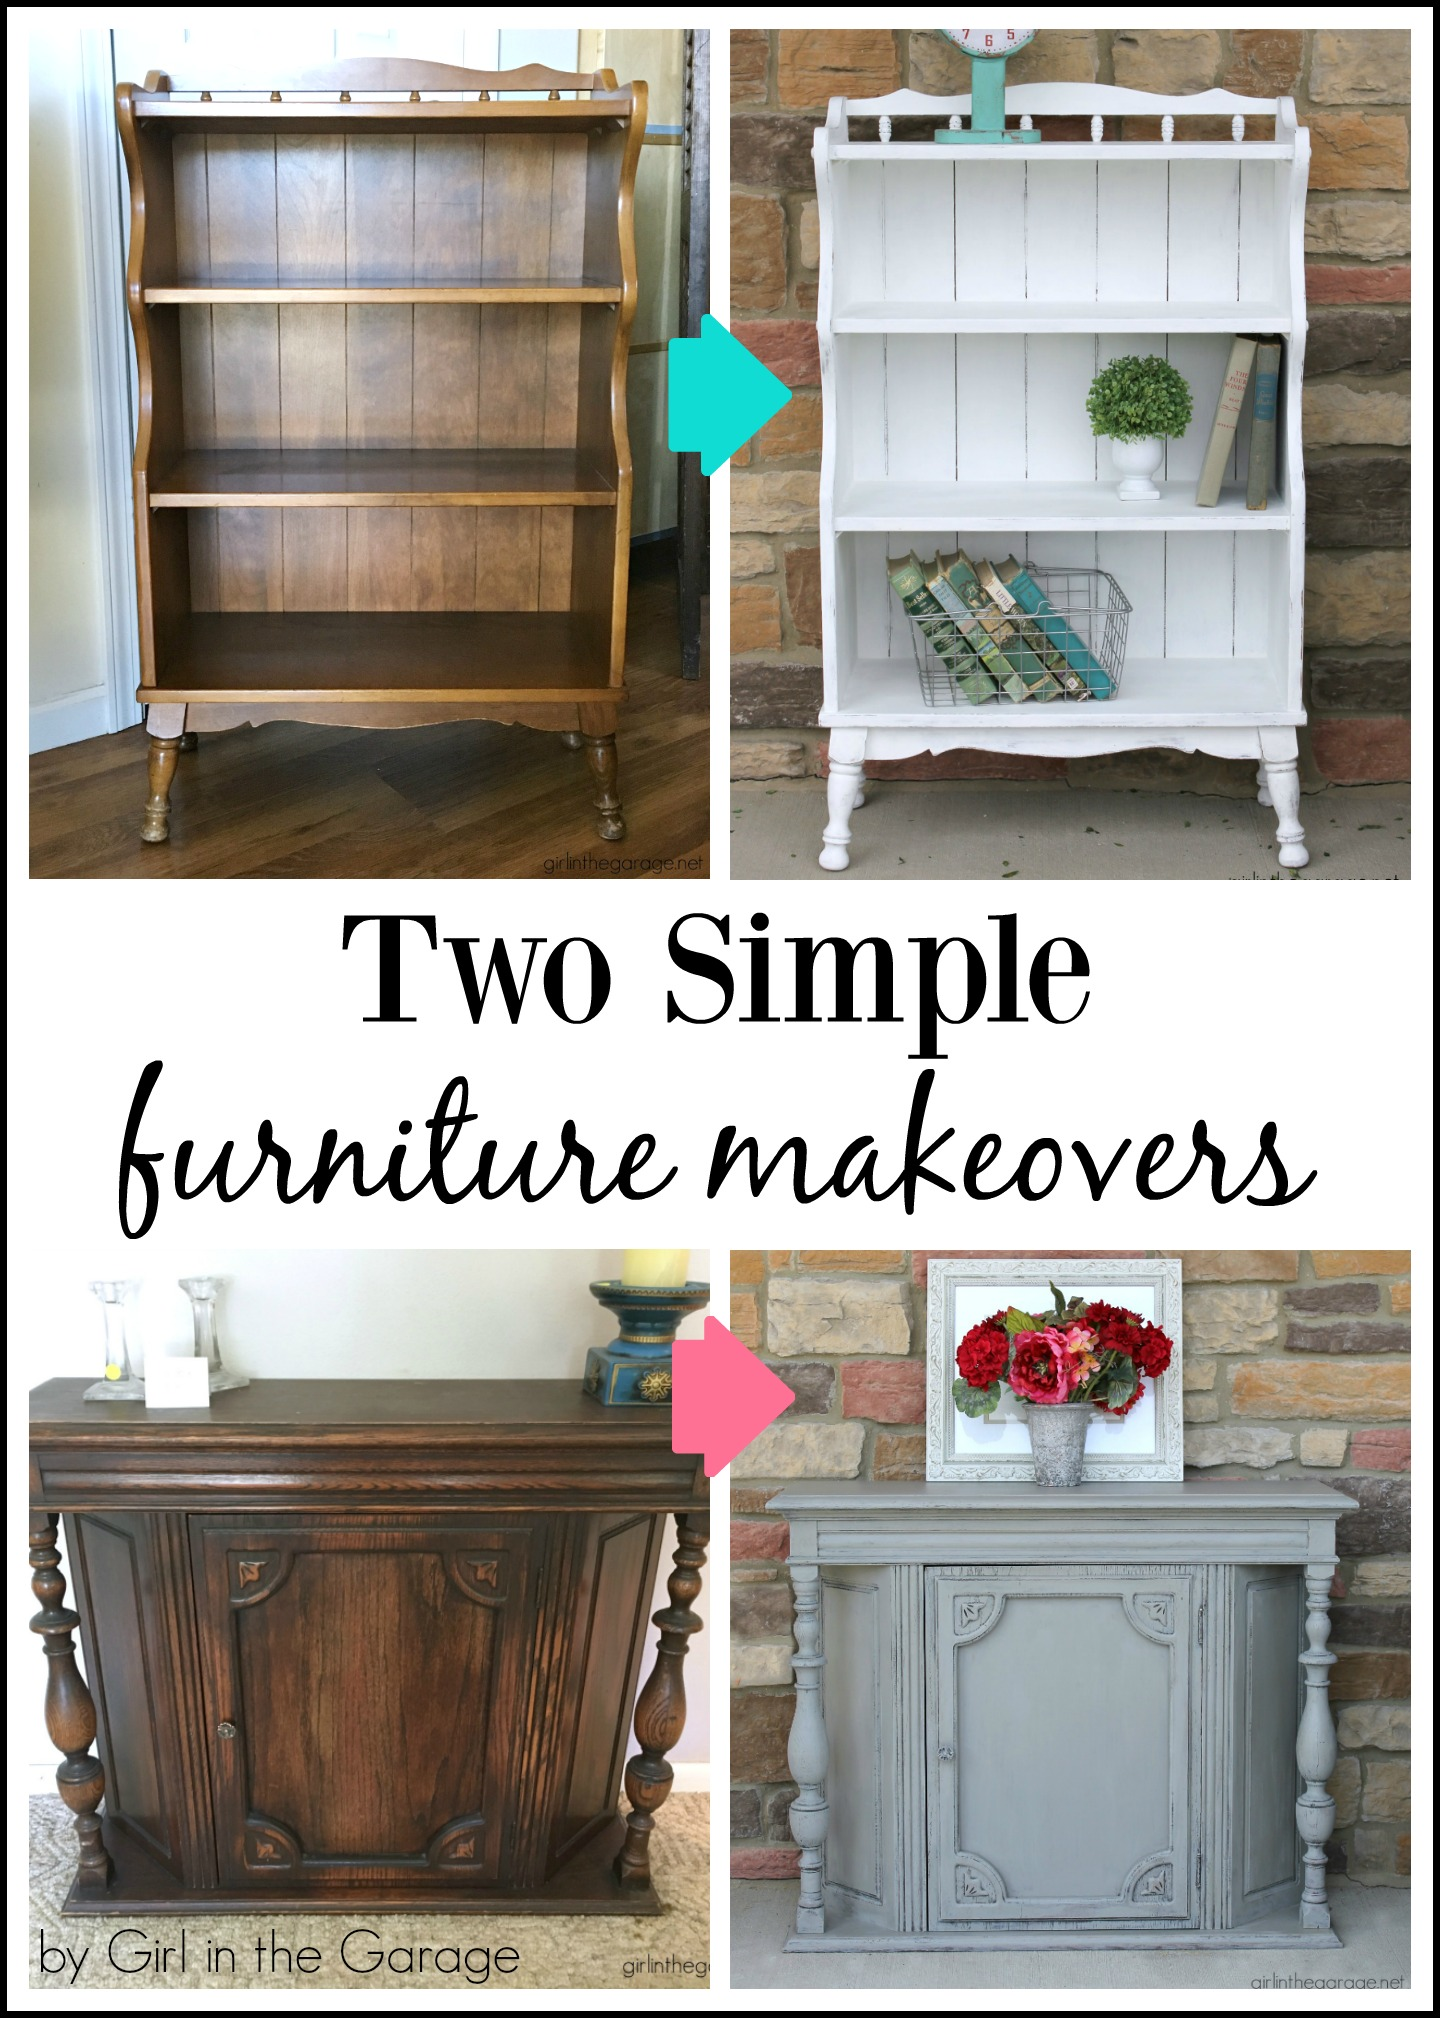 DIY Simple furniture makeovers - transform thrifted furniture into refreshed pieces with some TLC and paint. Tutorial by Girl in the Garage